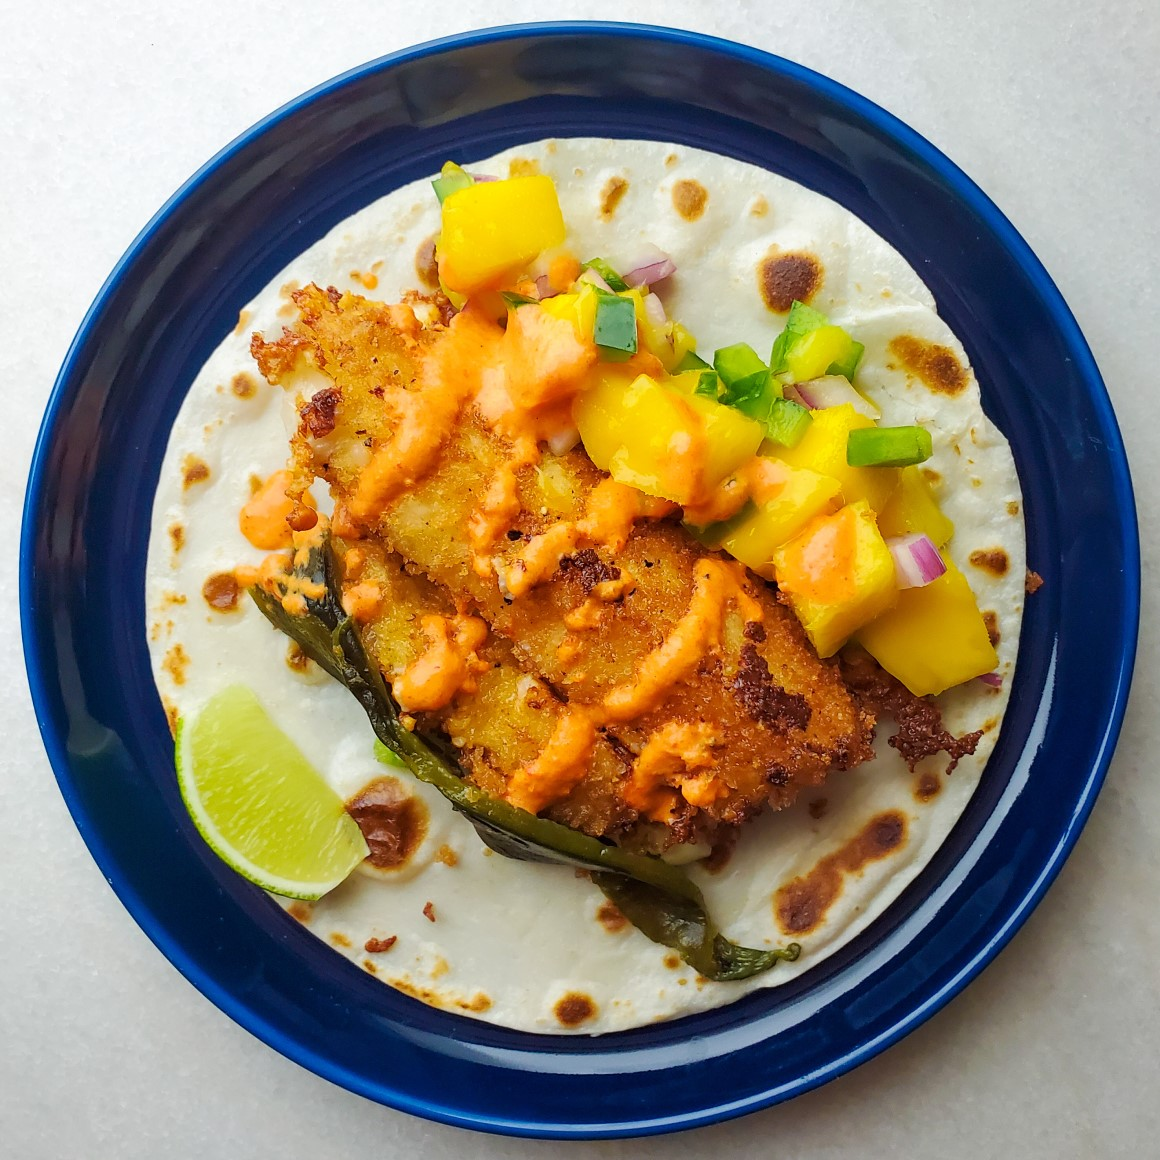 Fried Oaxaca Cheese Tacos with Mango Salsa